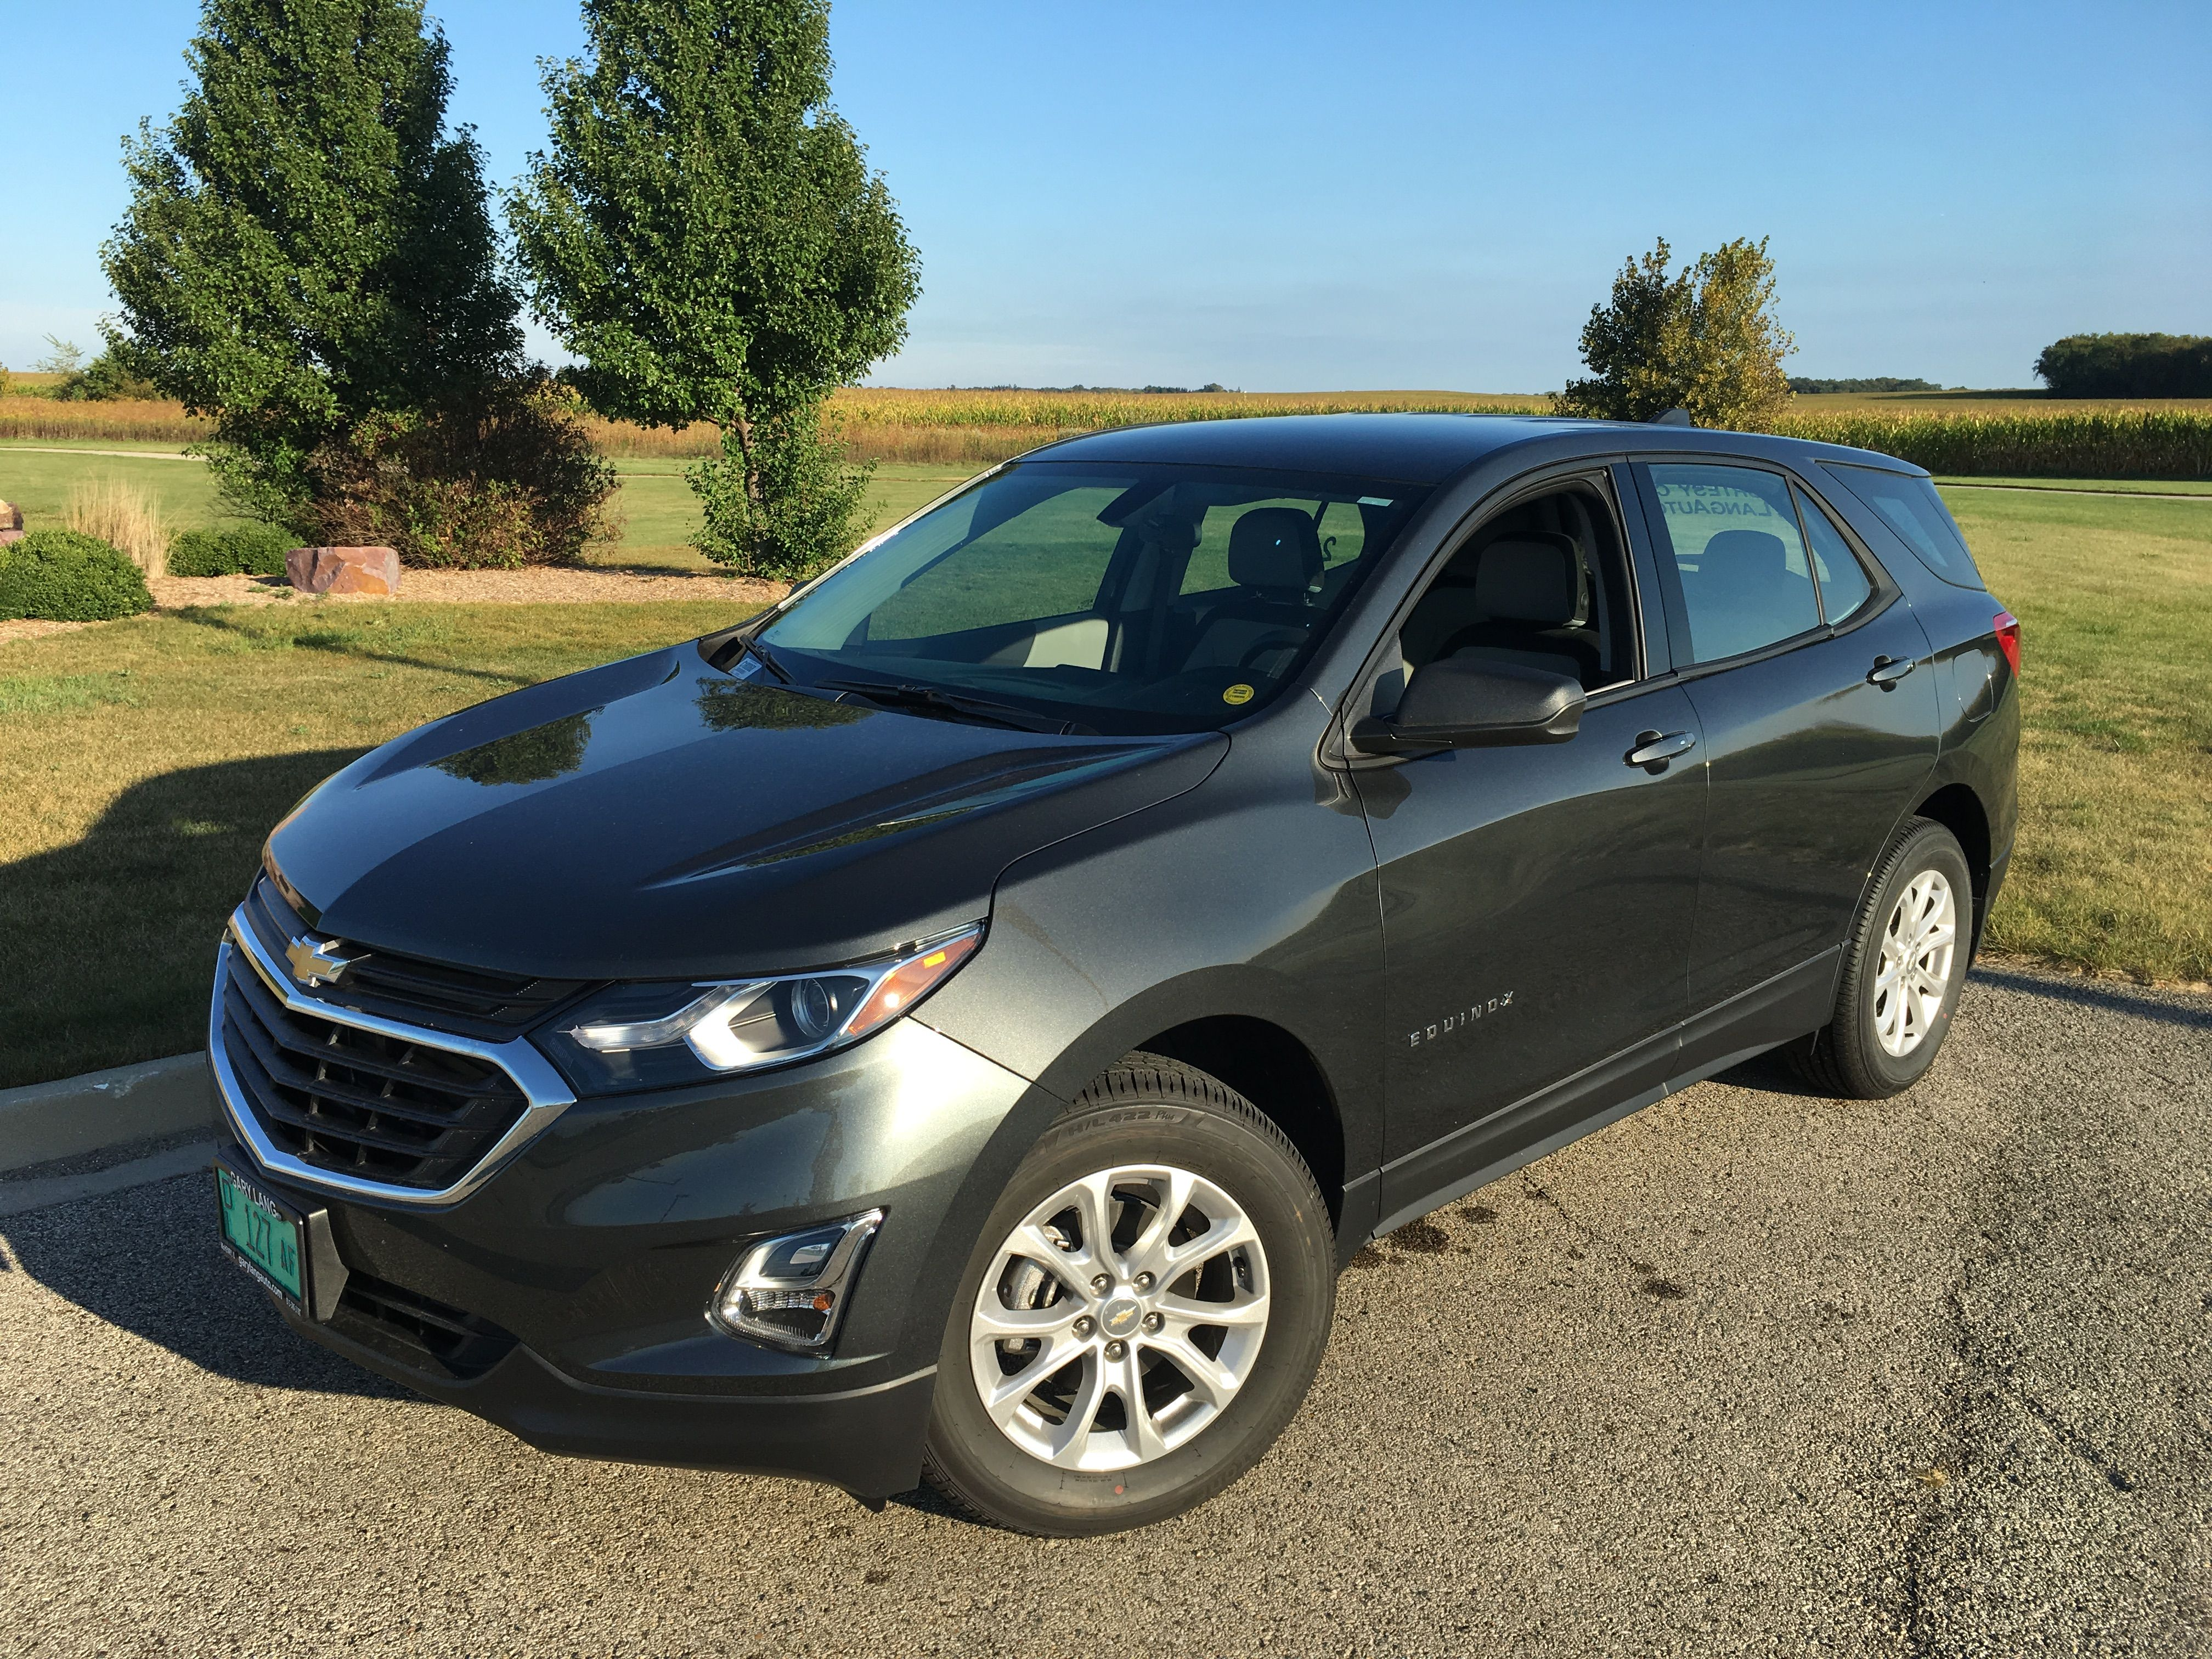 chevrolet diesel photos news follow pricing revealed equinox to and